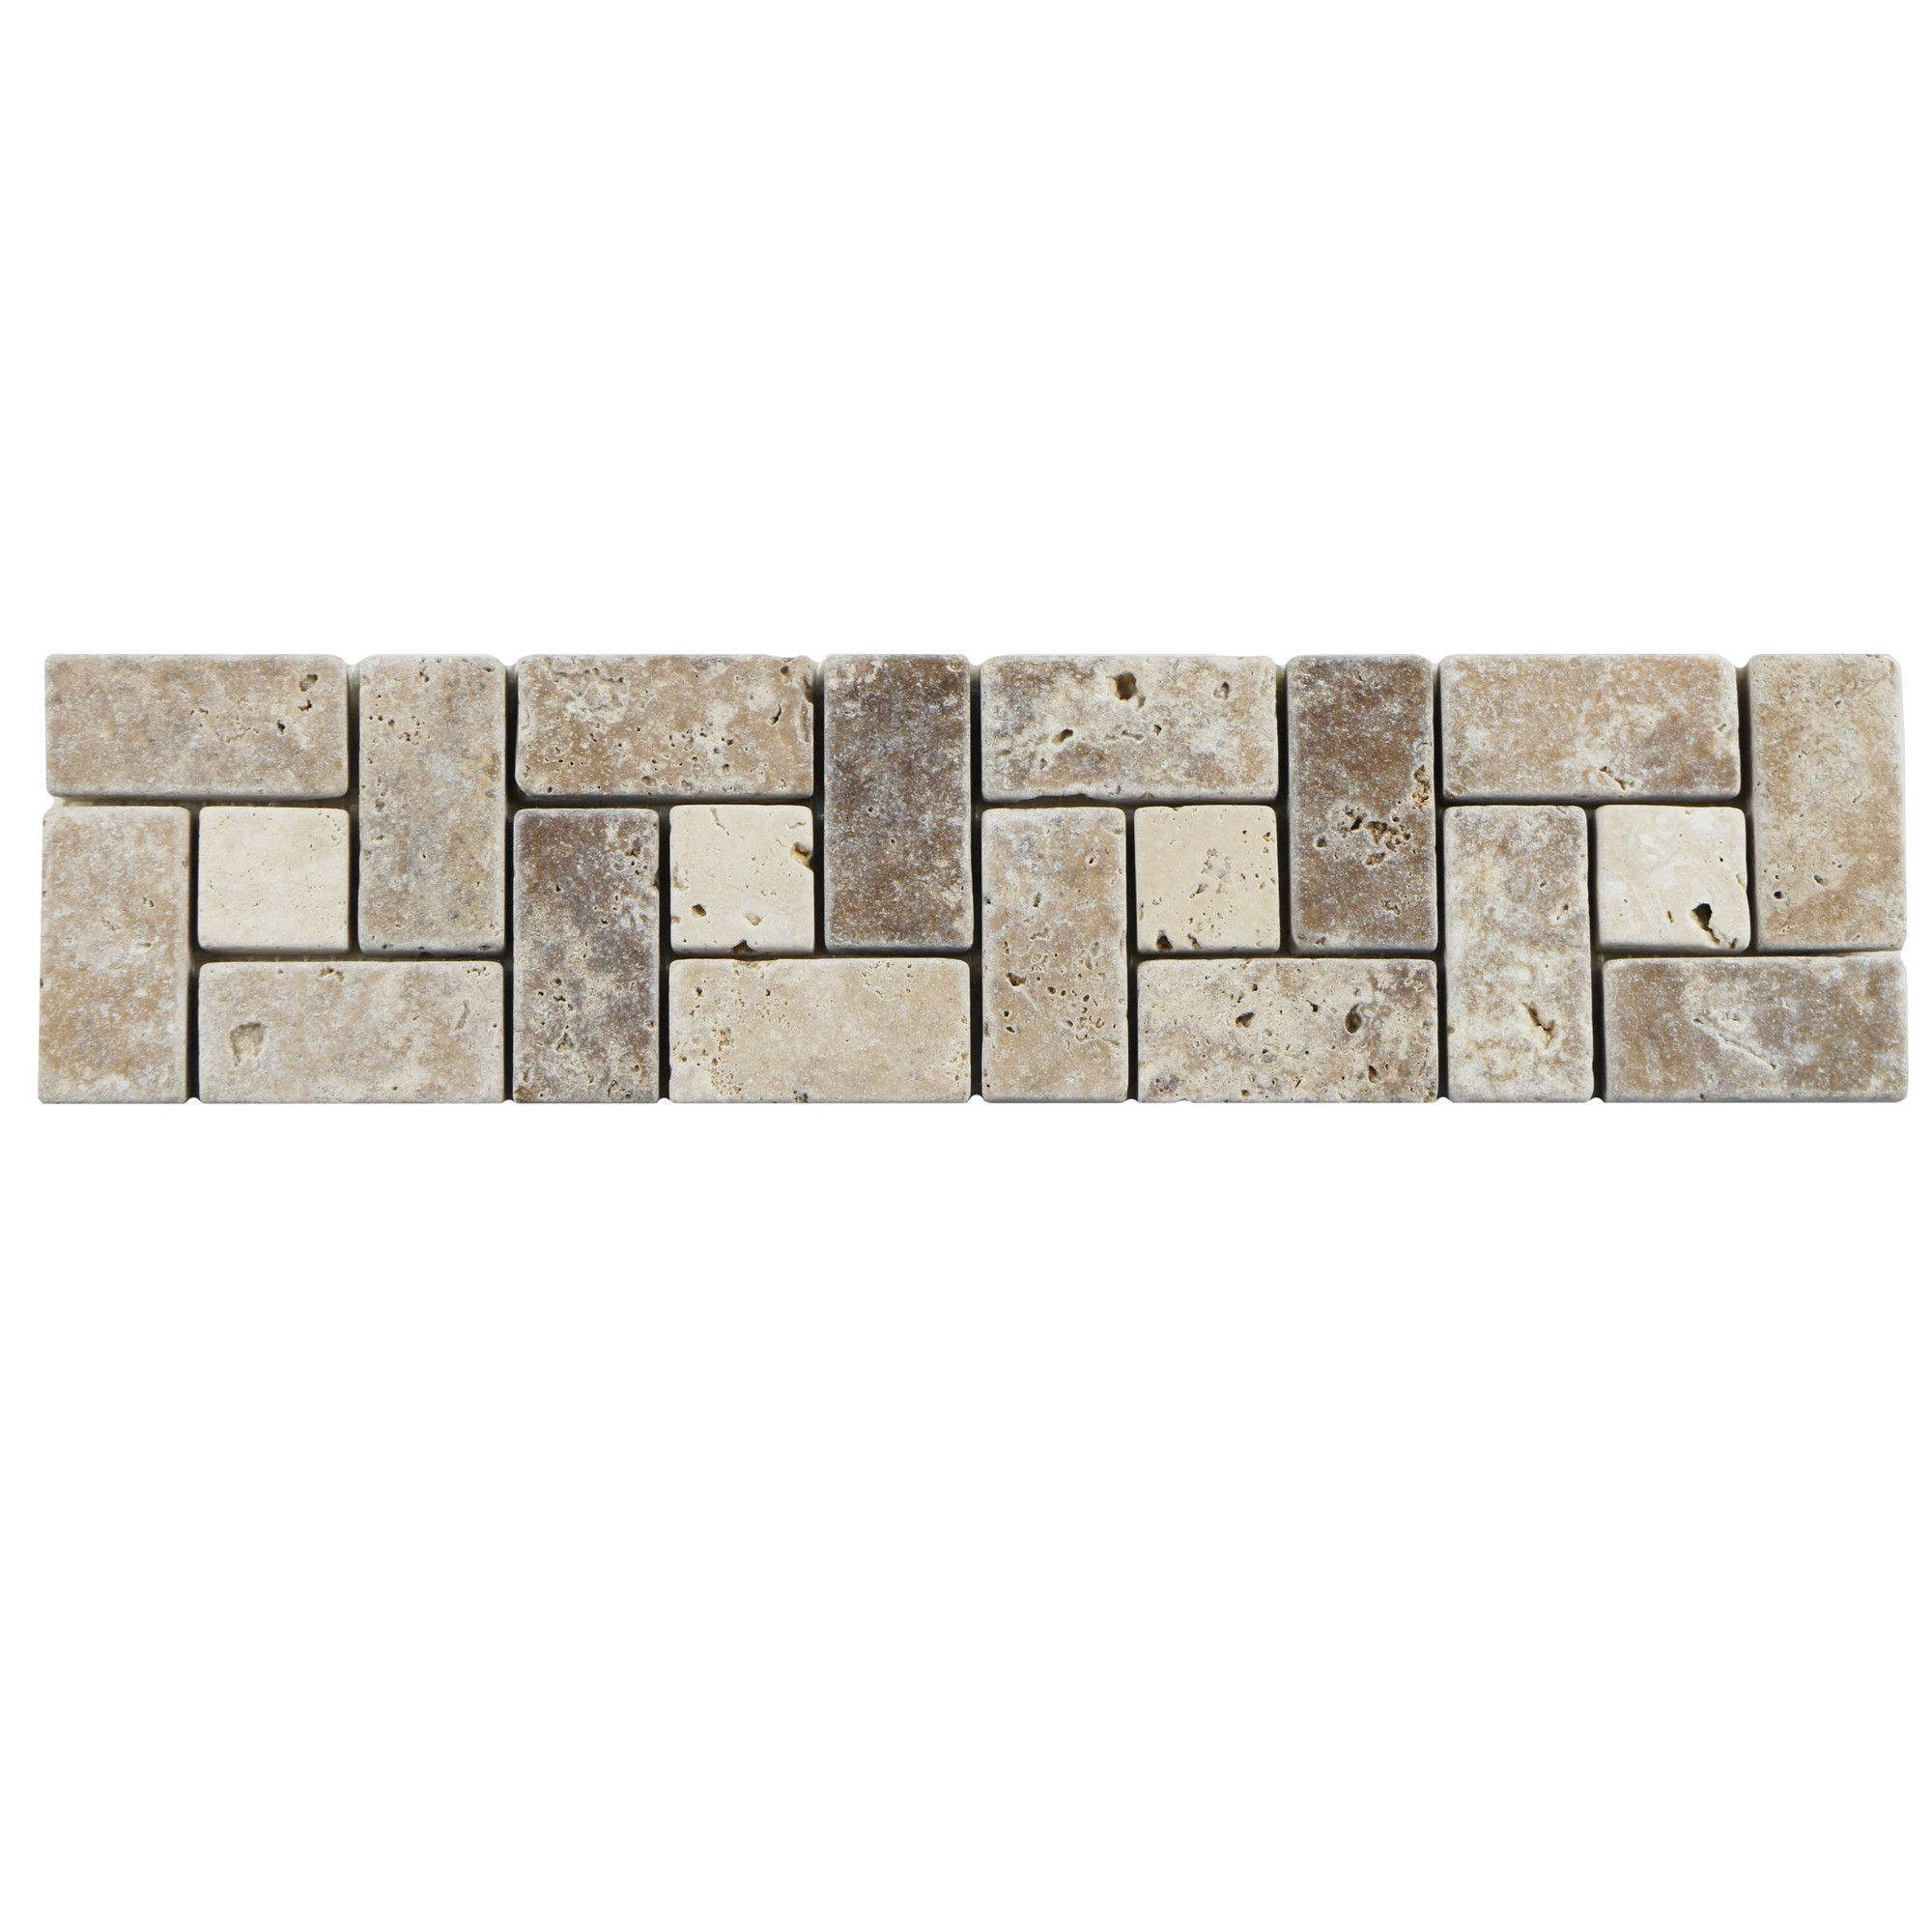 Boutin 12 X 3 Travertine Spiral Trim Listello Border Tile In